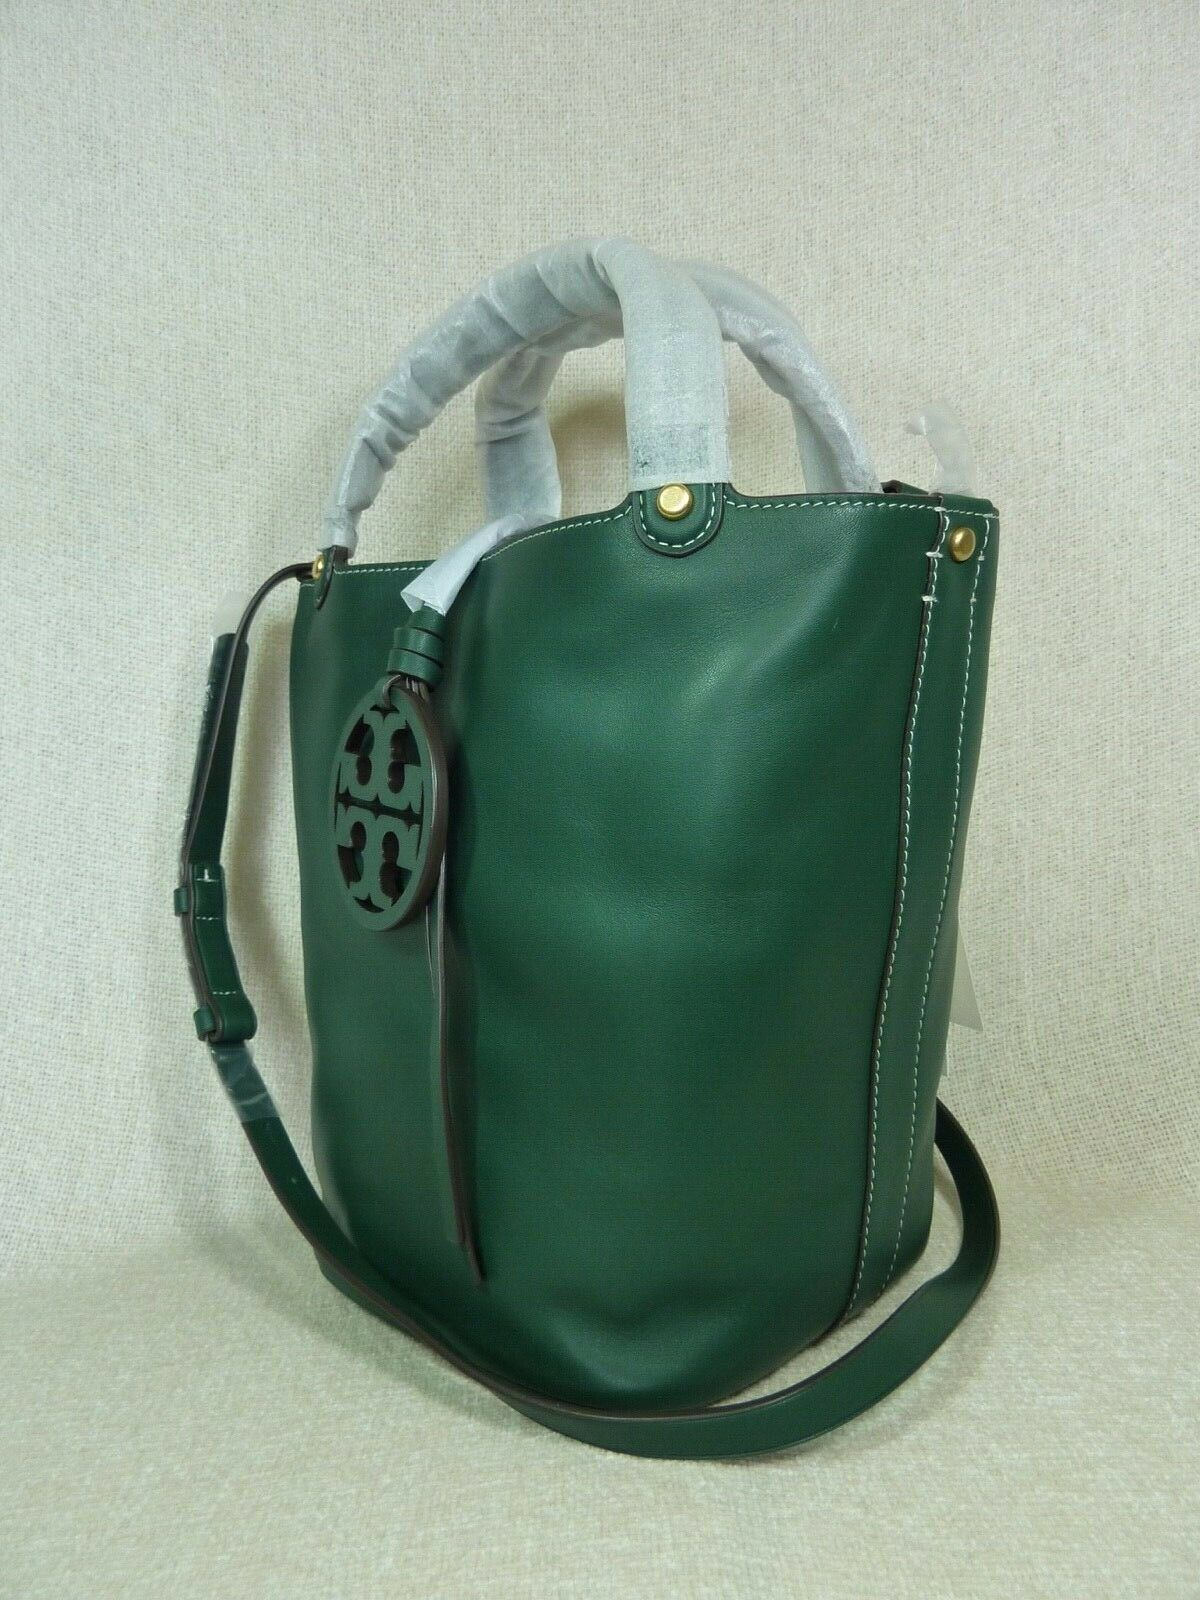 NWT Tory Burch Malachite Green Miller Bucket Tote image 3